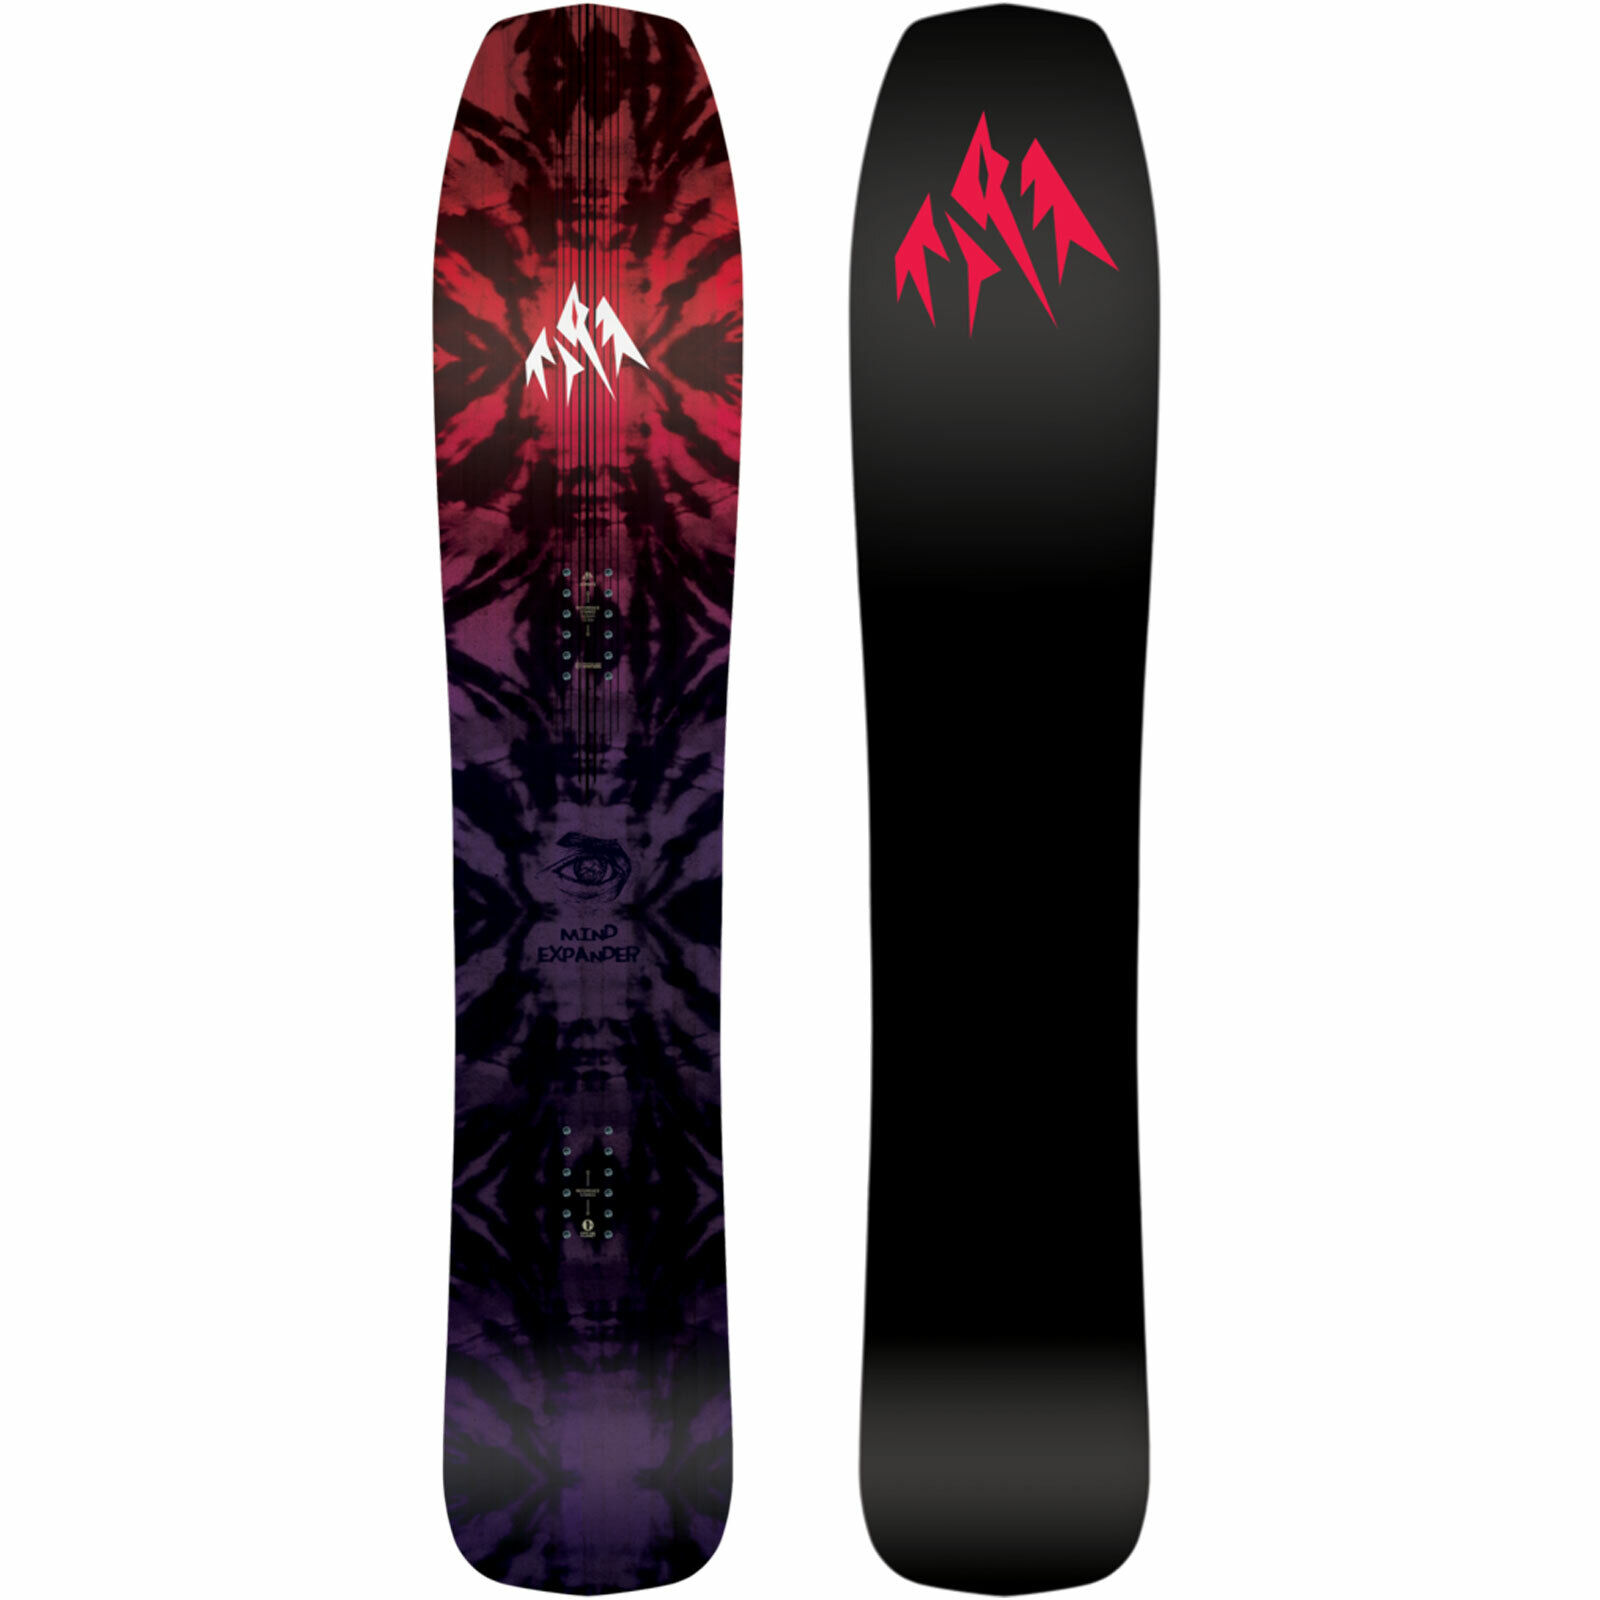 Jones damen Mind Expander Damen Snowboard All Mountain Freeride 2019 NEU